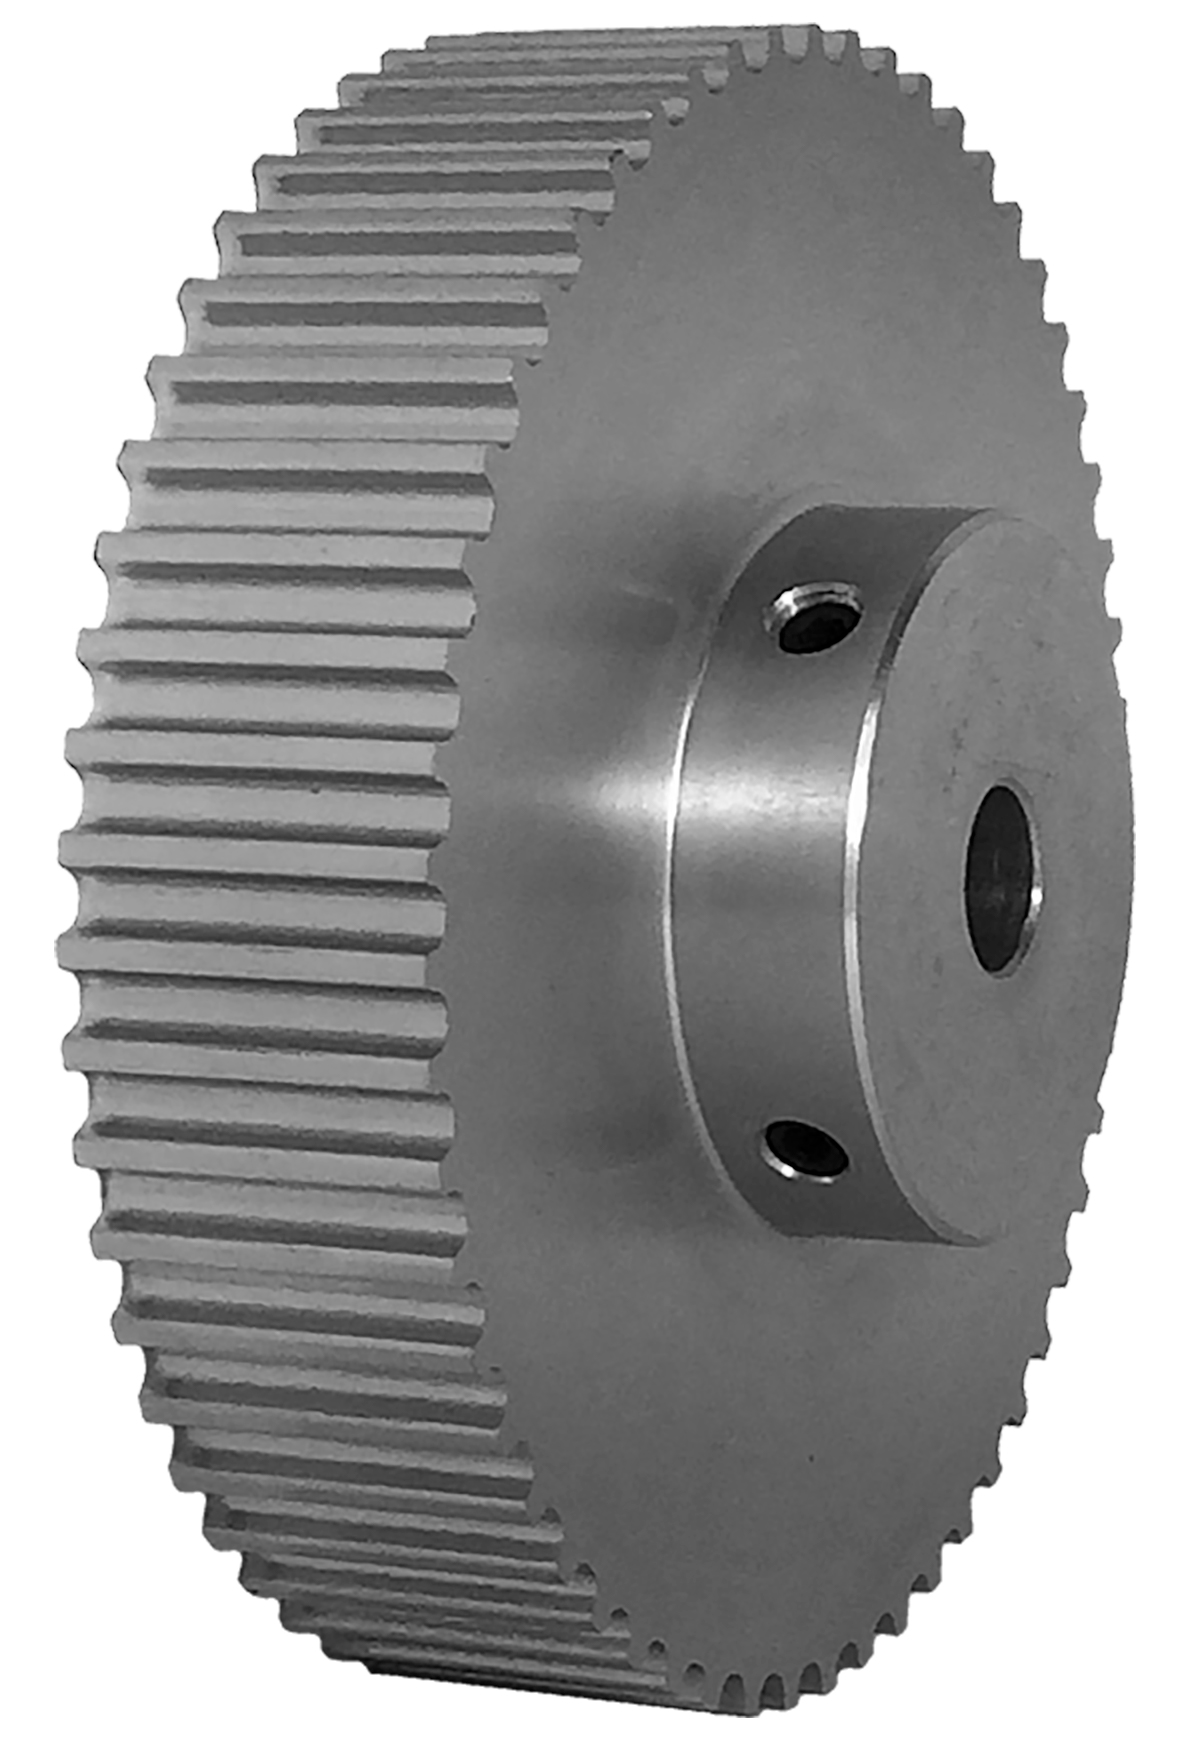 56-5M15-6A5 - Aluminum Powerhouse®HTD® Pulleys